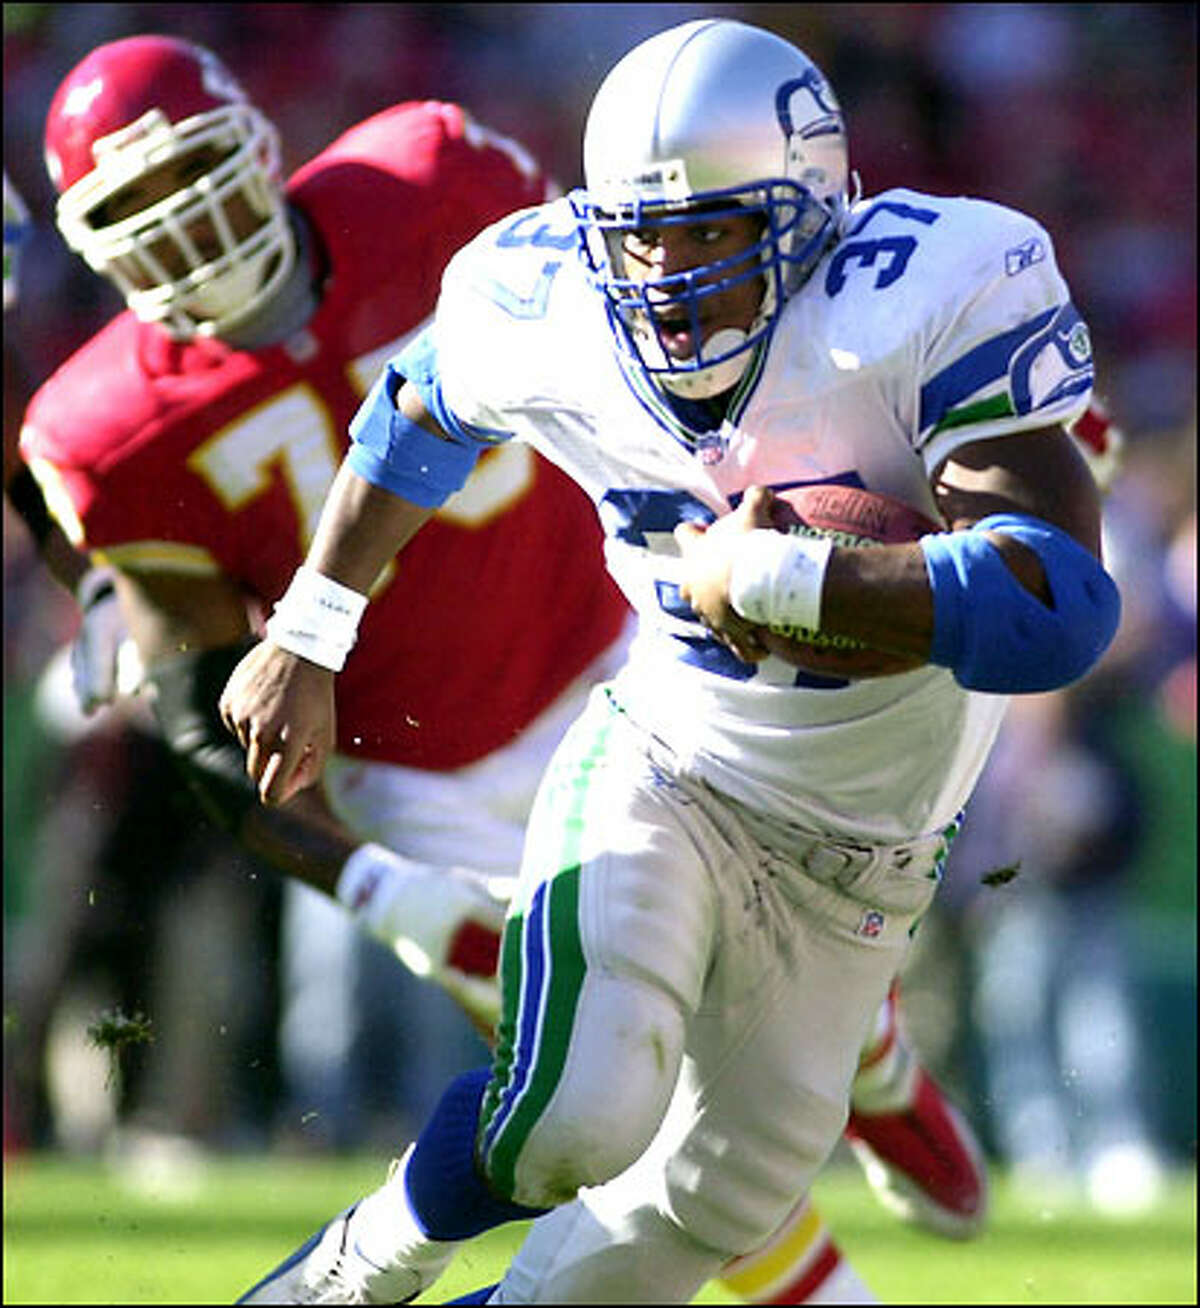 Seahawks running back Shaun Alexander runs past Kansas City's Norris McCleary during the first half. Alexander carried the ball only 13 times for 43 yards.